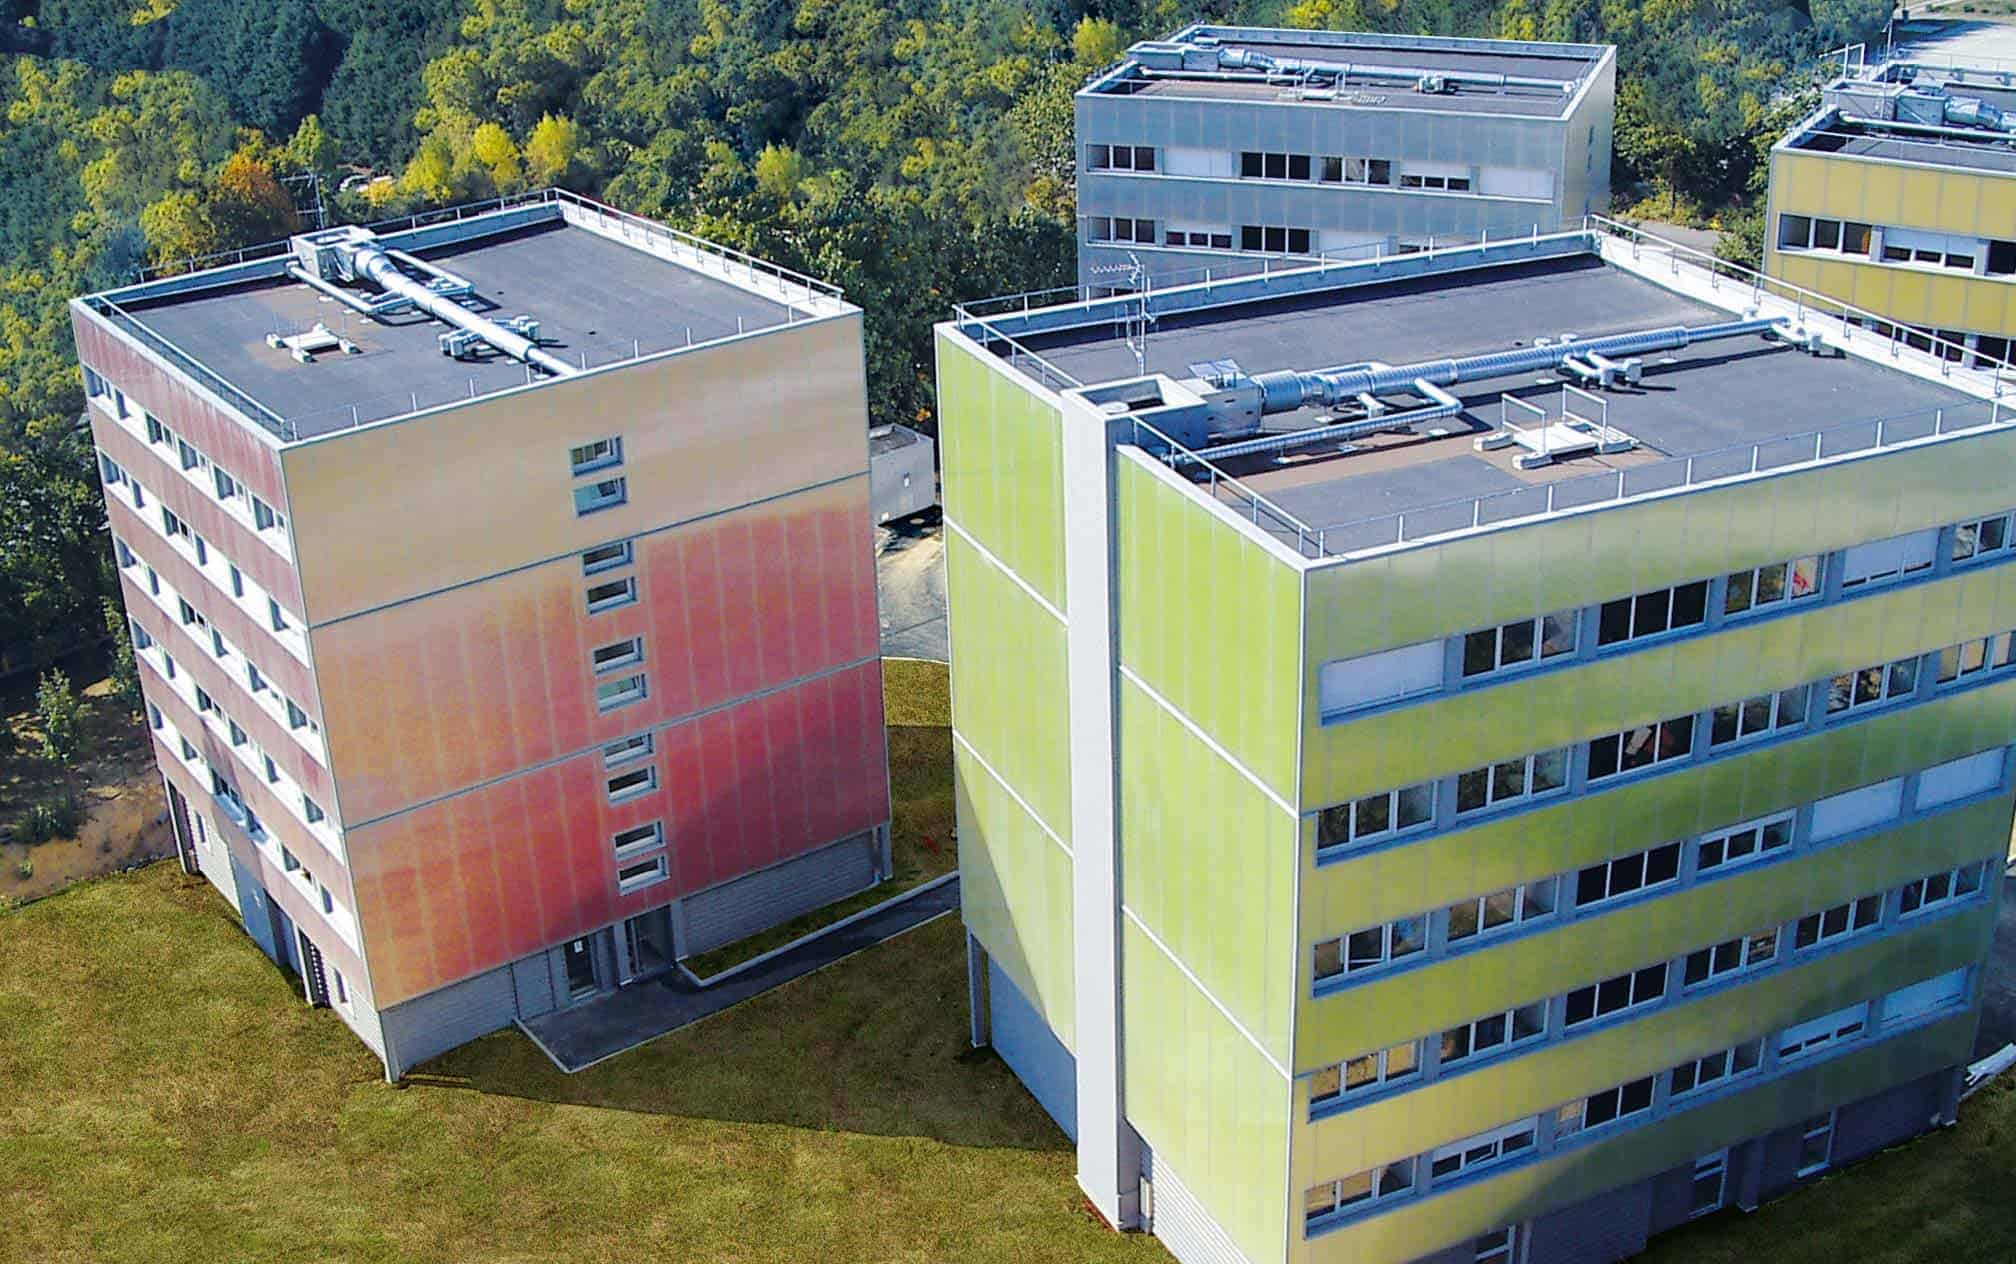 Why we should love green buildings